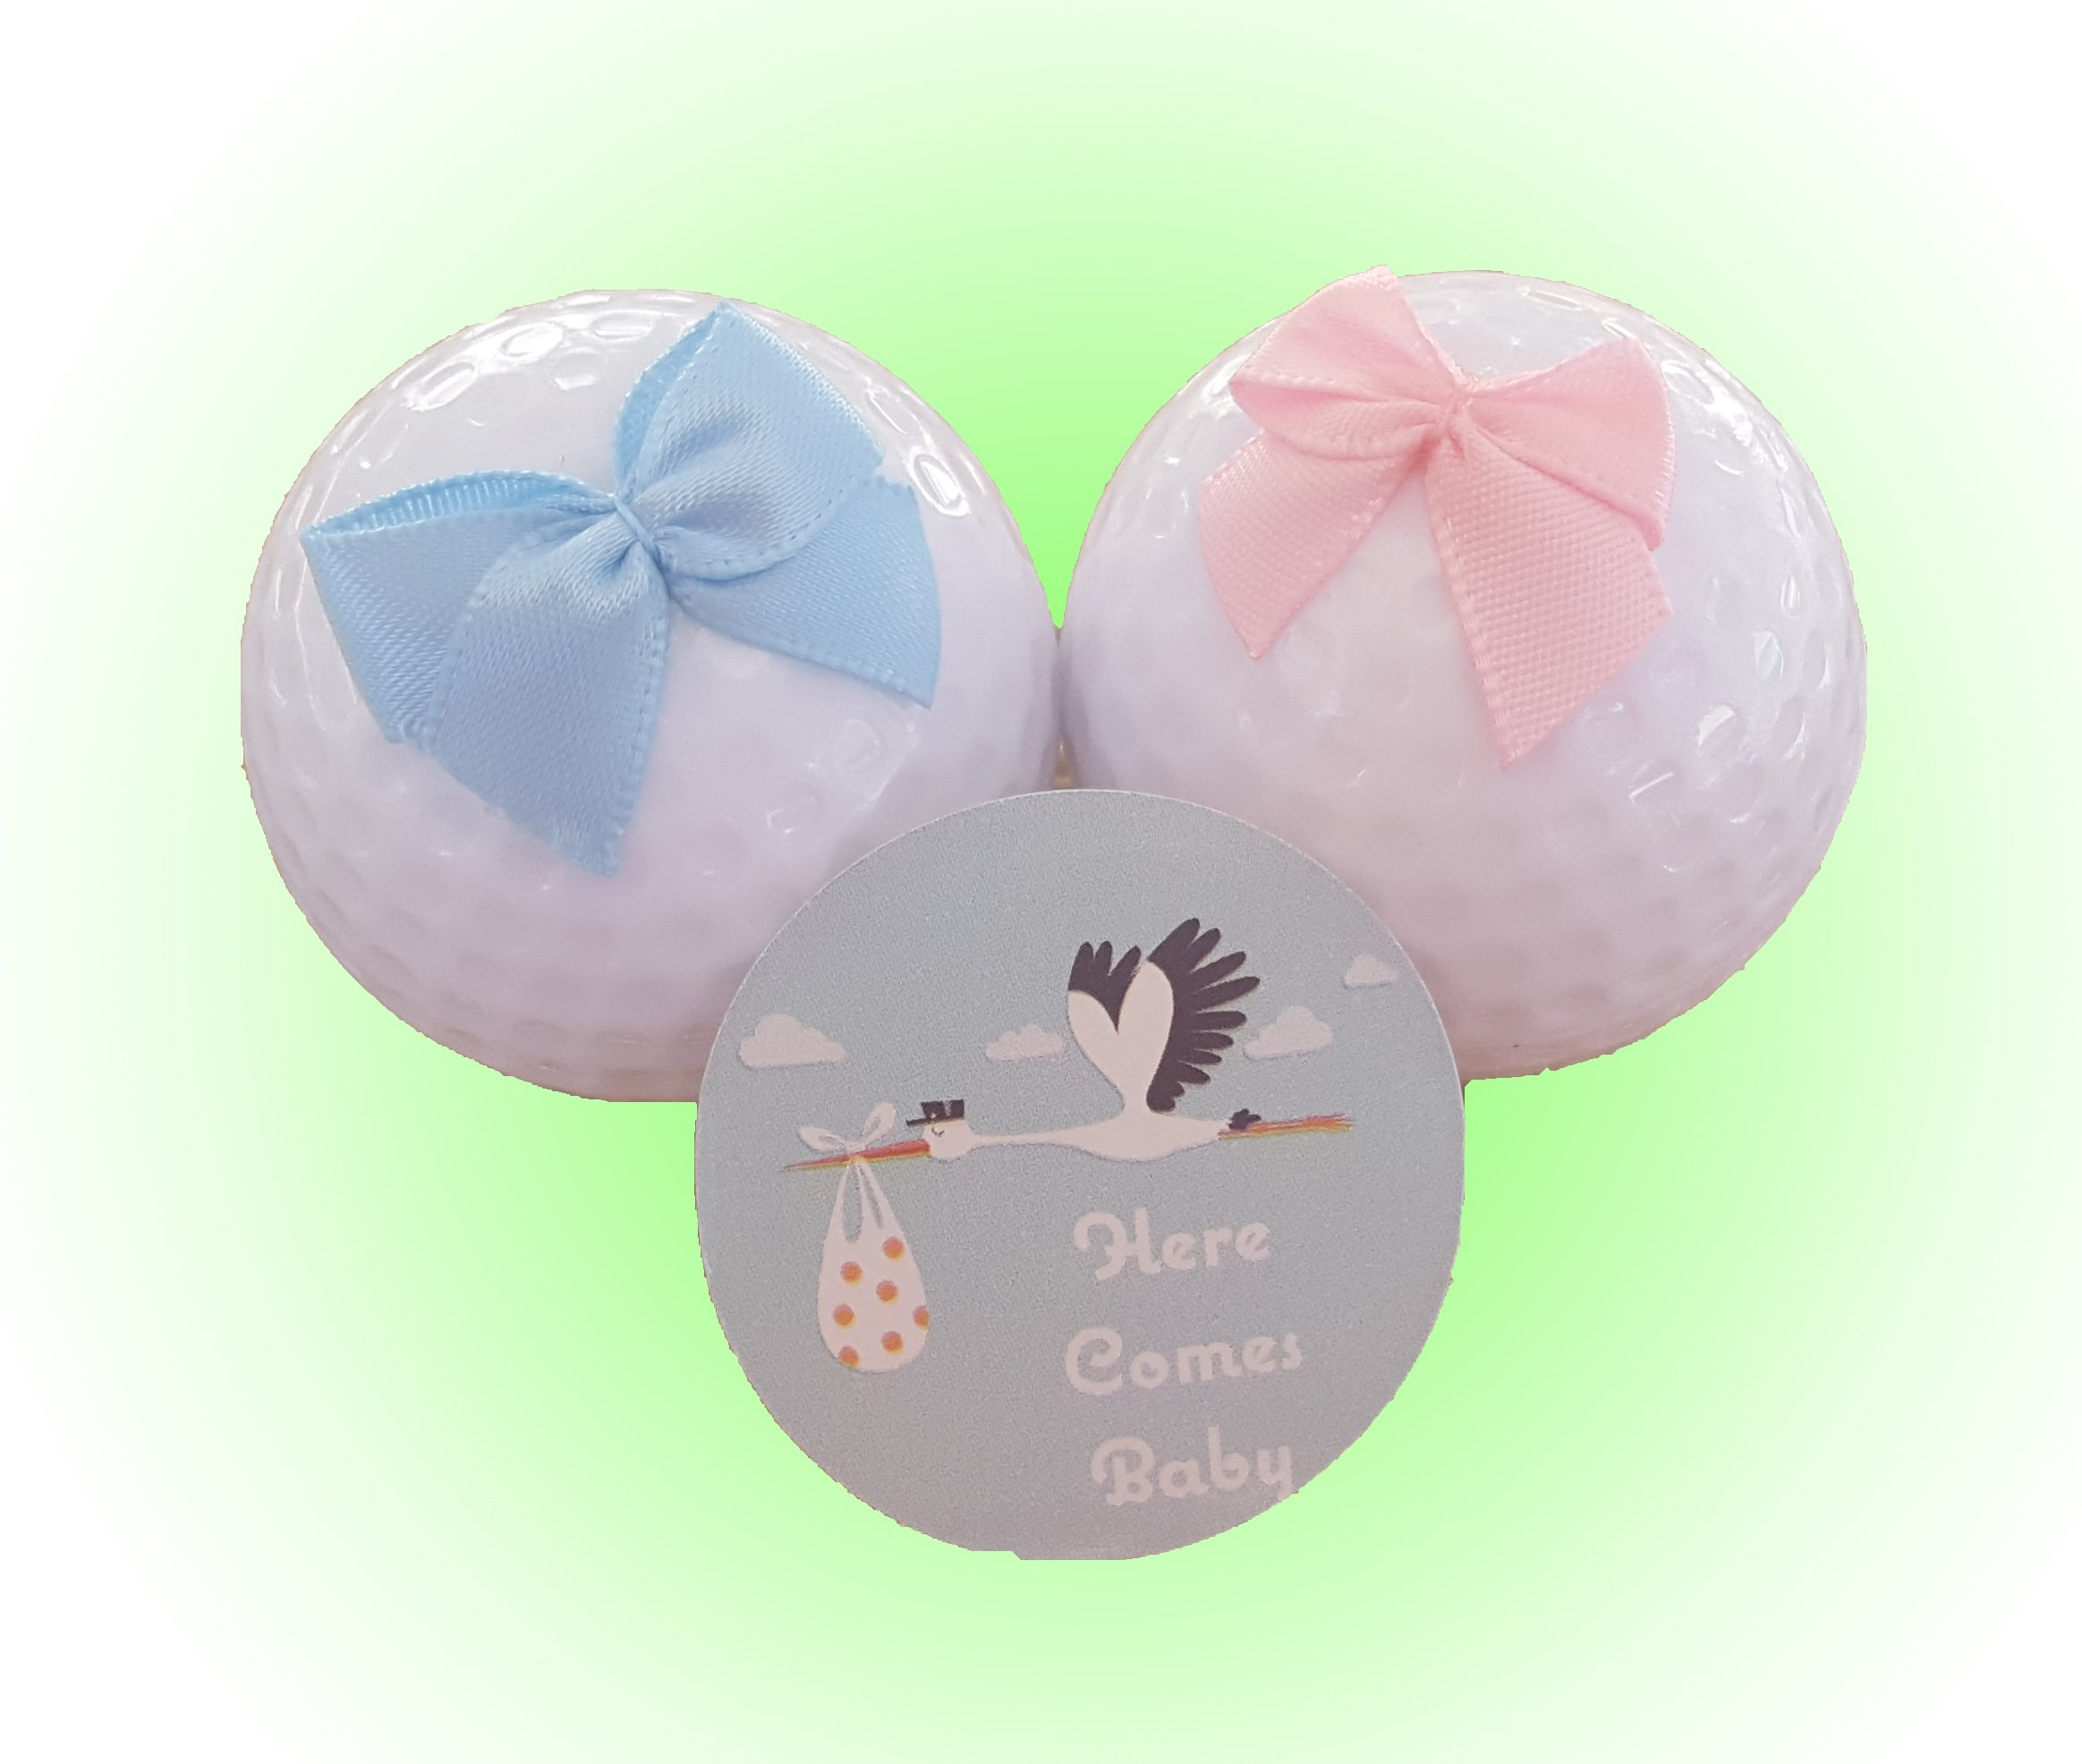 Baby Gender Reveal Exploding Golf Balls - 1 Team Pink (Girl) and 1 Team Blue (Boy) - by Here Comes Baby